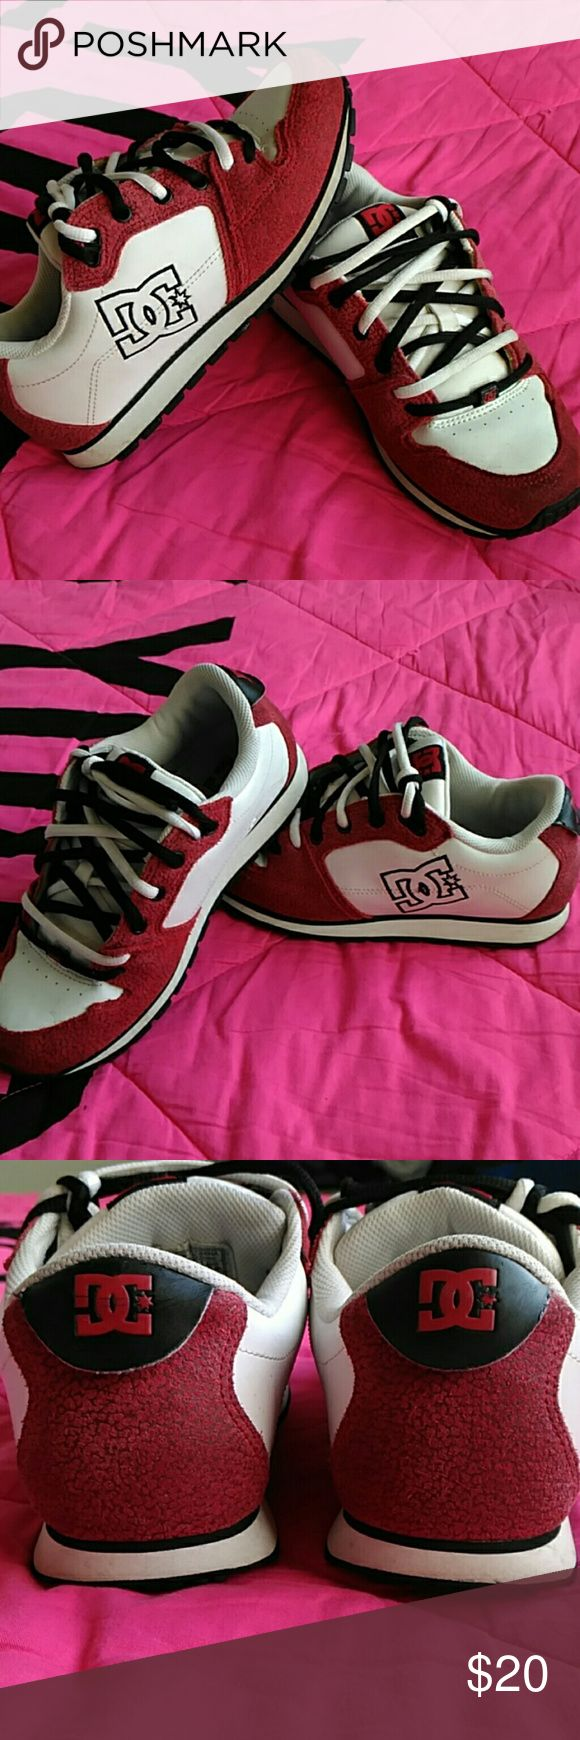 DC SHOES CO USA DC SHOES Size 6.5L Really nice condition  Lots of life left Cleaning out my closet Nothing wrong with SHOES at all Short shoelaces that's it Very comfy  Not worn much These even look nicer in person DCSHOESUSA Shoes Sneakers